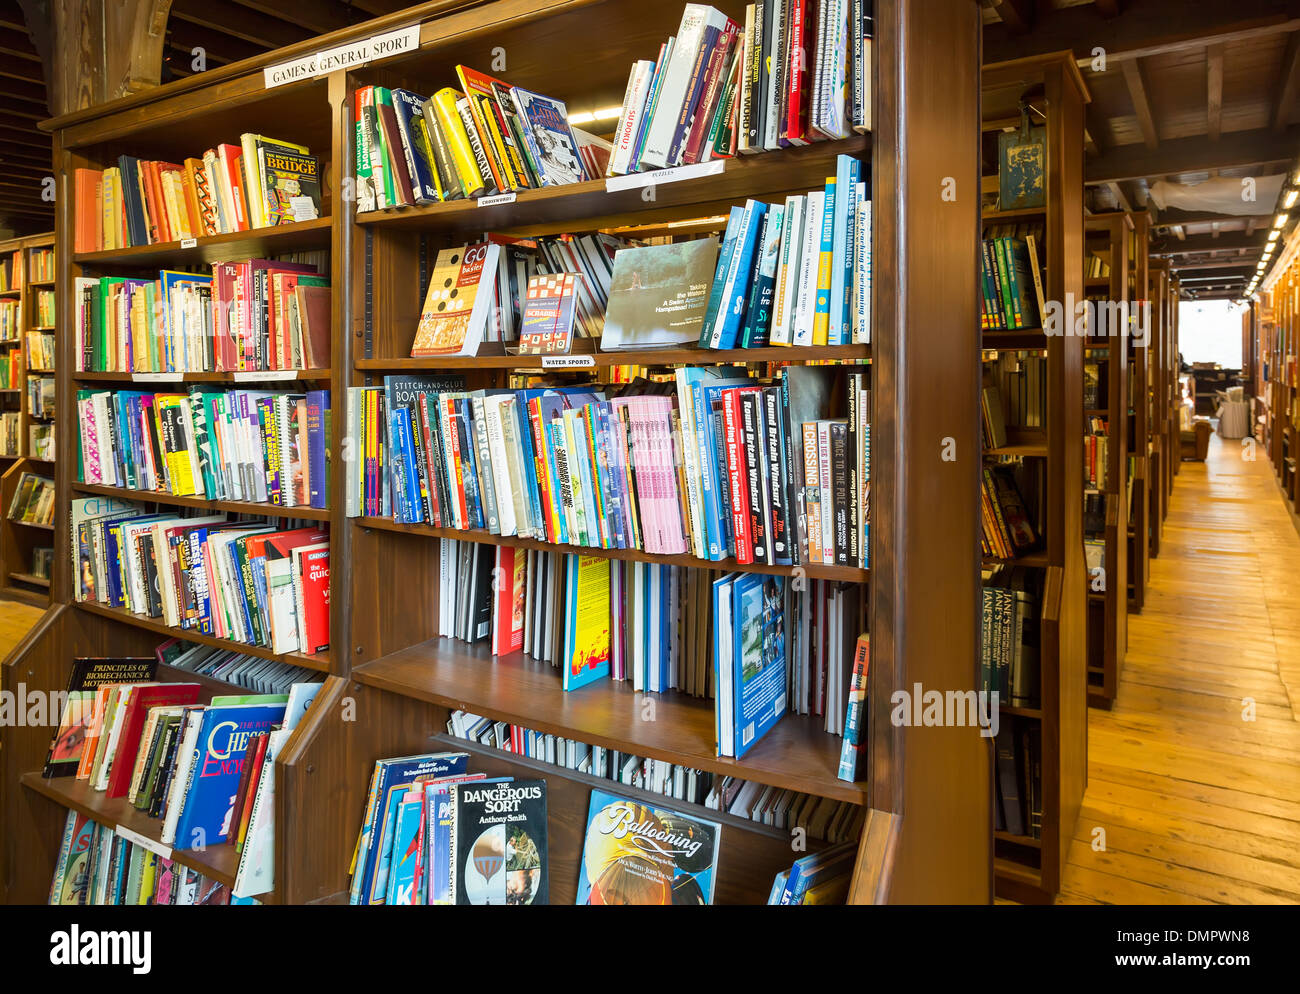 Second hand books on shelves, Hay on Wye, UK - Stock Image